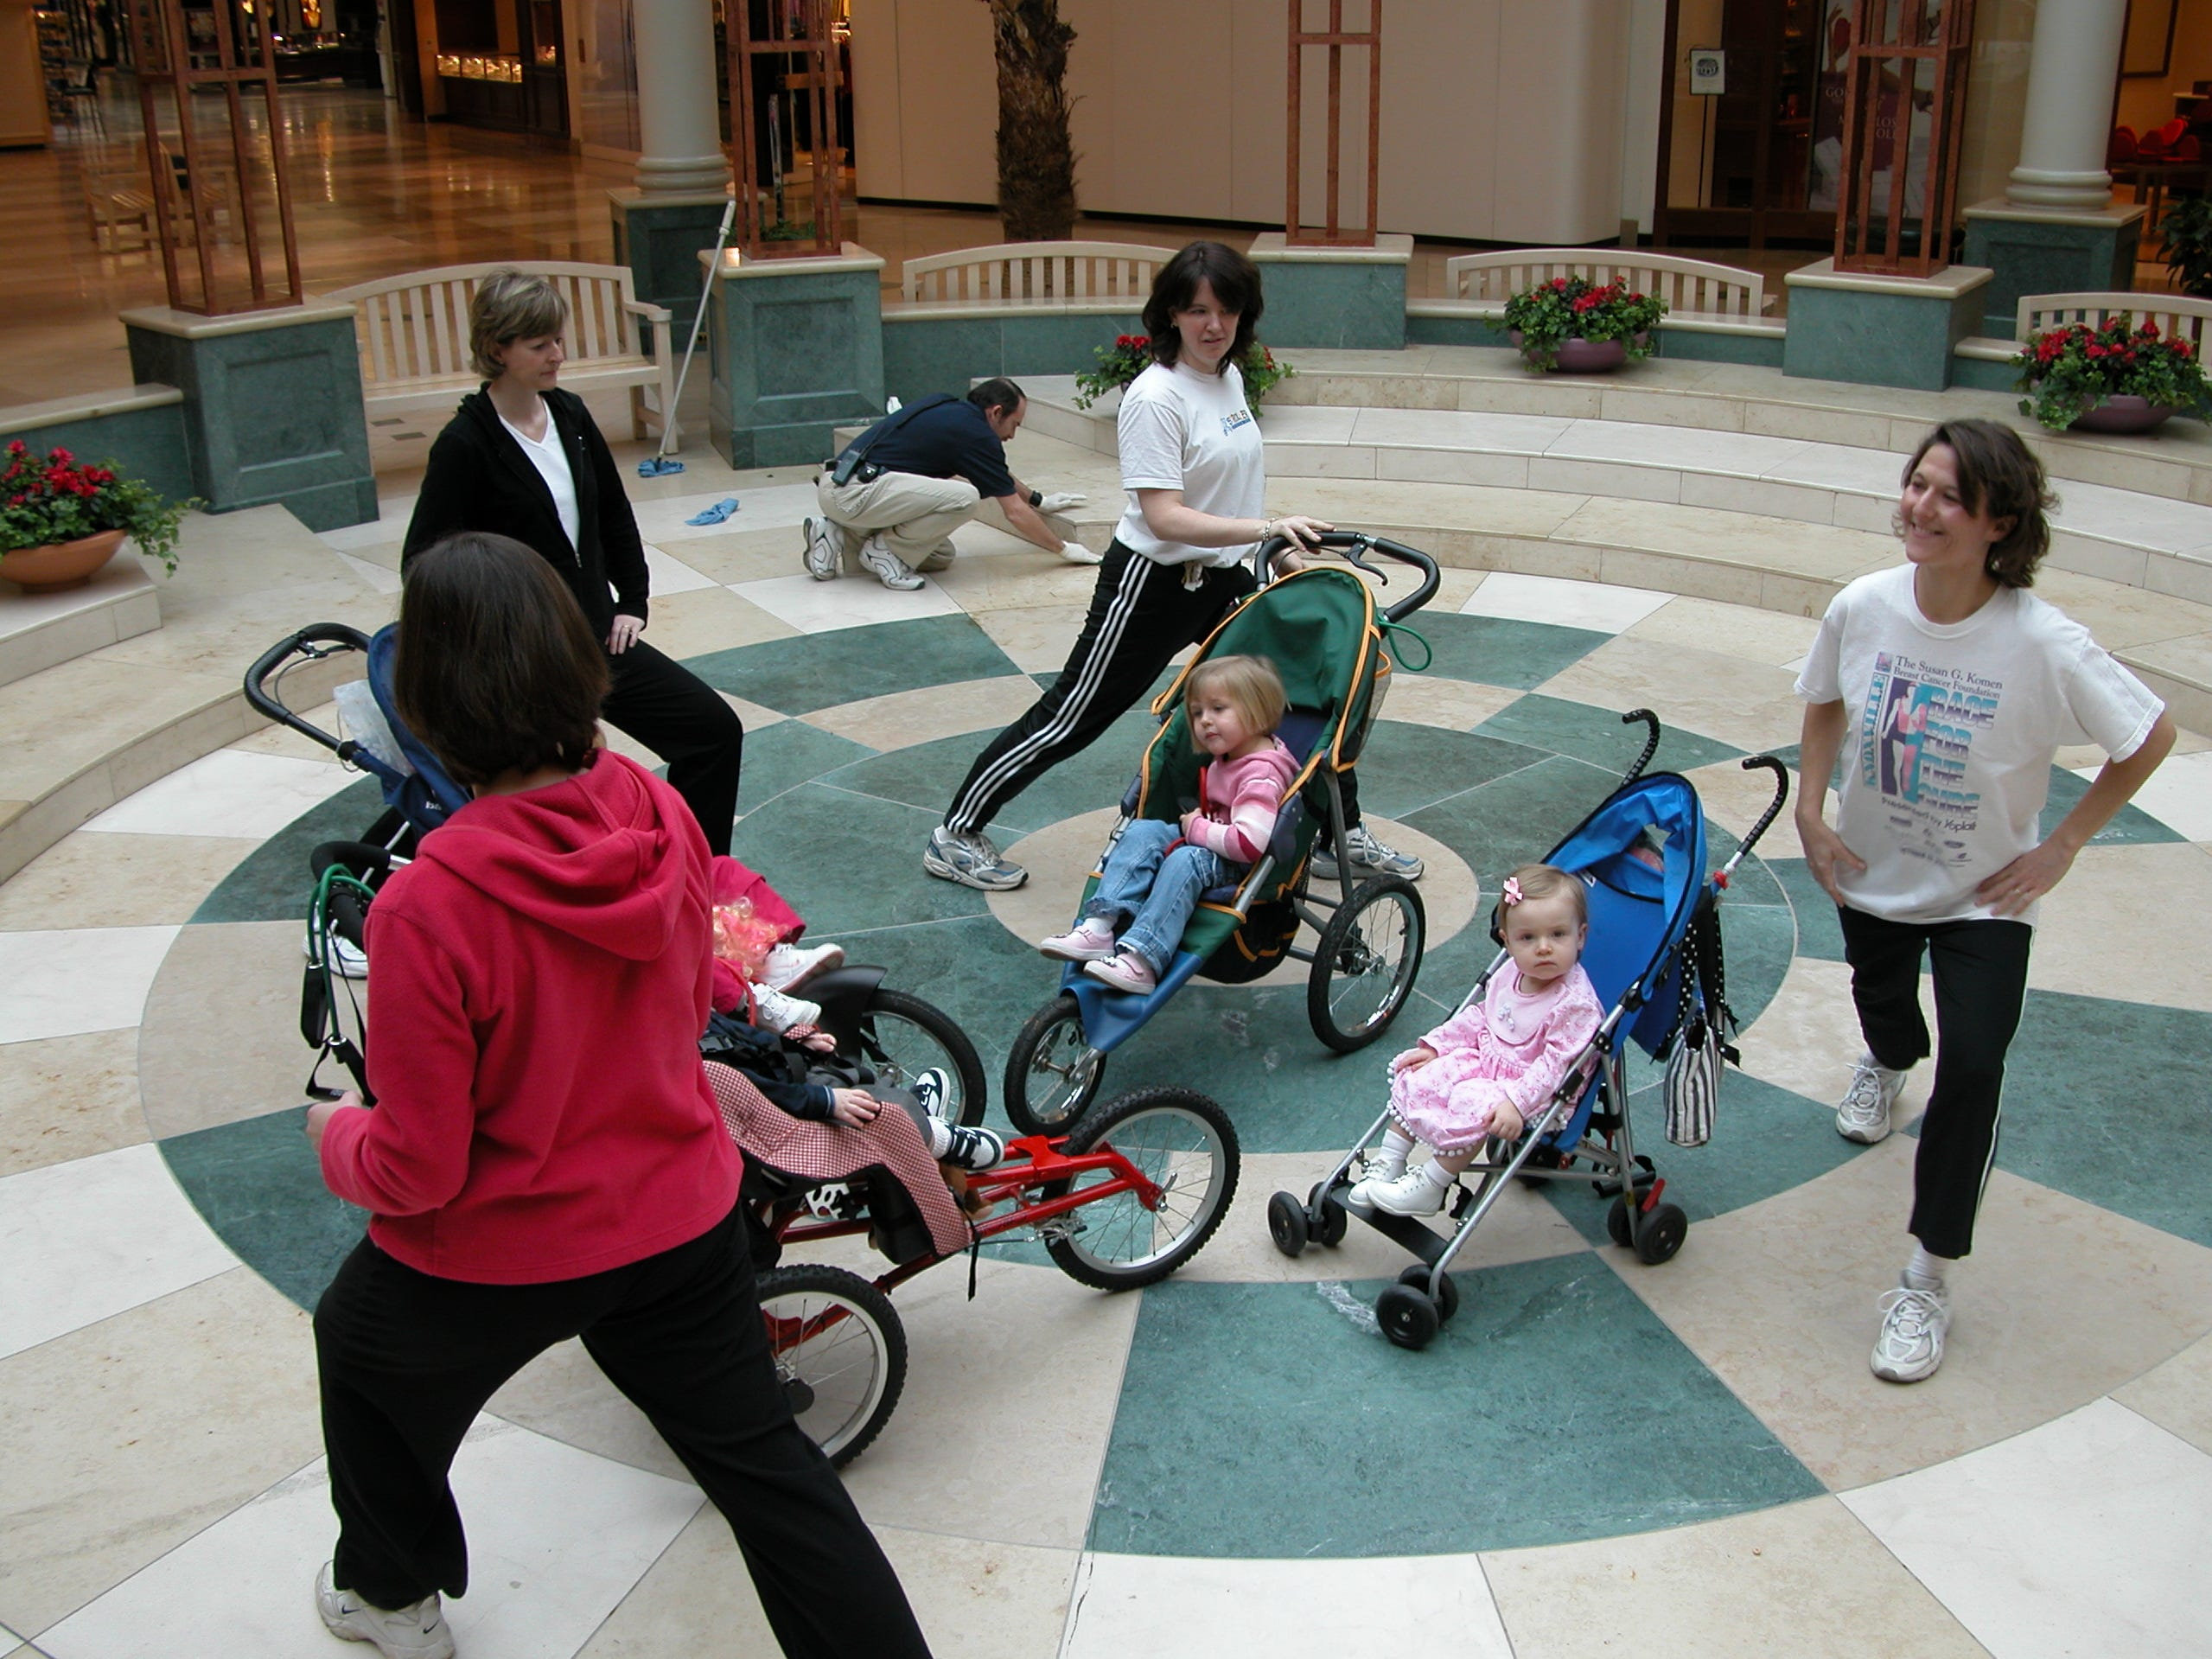 Participating in the new Stroller Strides fitness class for moms and infants or toddlers at West Town Mall are, from left, moms Helen Arnold (in red jacket), of Sequoyah Hills, Elizabeth Gregor of Lyons Crossing, leader Caroline Mann of Westwood, and Amy Weller of Lovell Heights. In the strollers are, 3-year old Devon Kay Weller and 16-month-old Sophie Gregor. Obscured by the exercisers are 16-month old Robert Mann and 3-year old Alice Arnold.